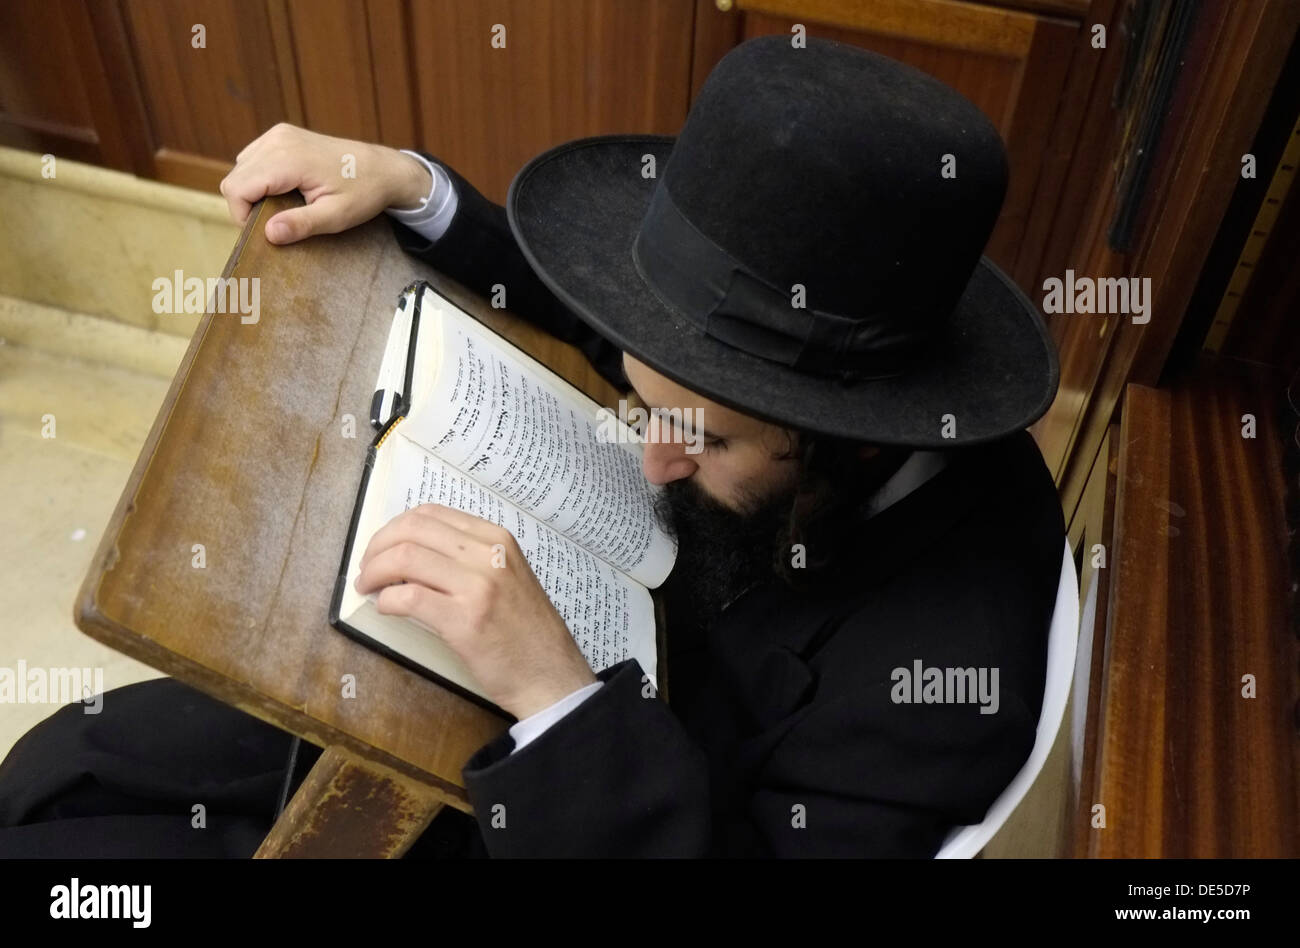 An Ultra Orthodox Jew reading the Sidur prayer book in the Synagogue of the Western Wall in East Jerusalem Israel - Stock Image